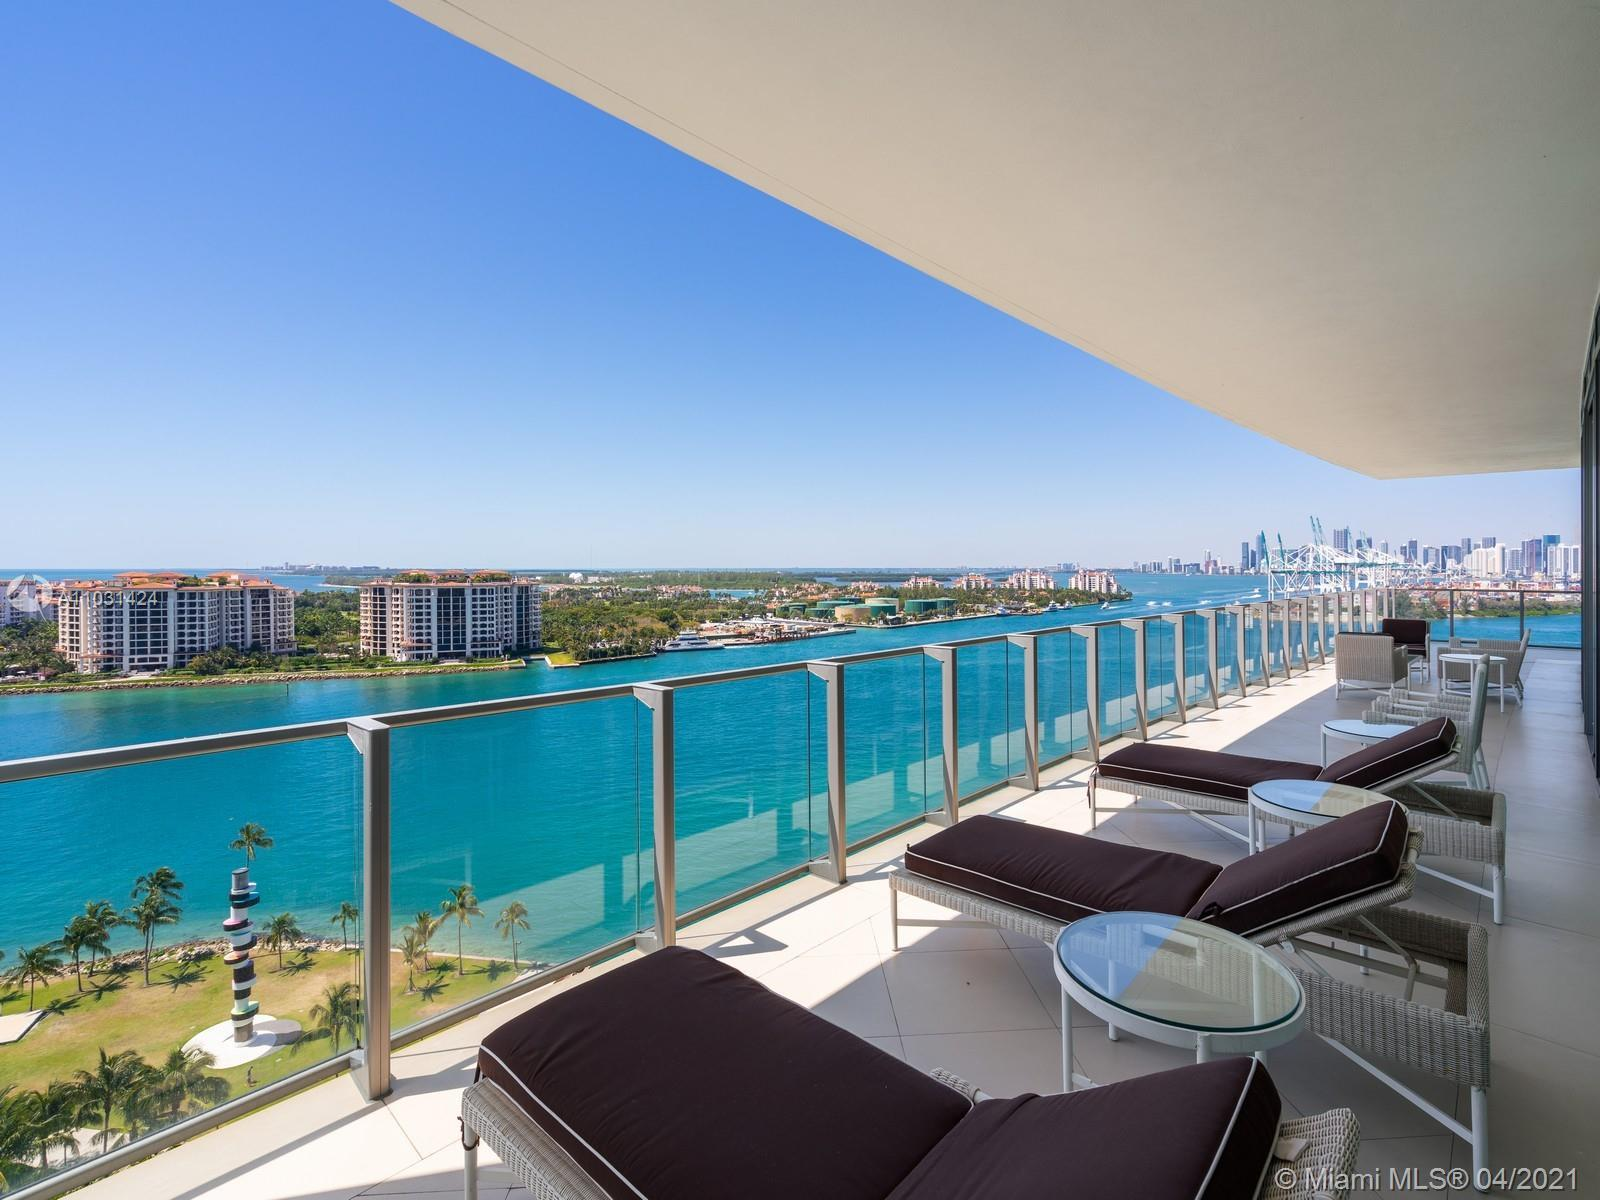 Very Unique and luxurious corner Unit at the Prestigious Apogee South Beach Residence. Completely re